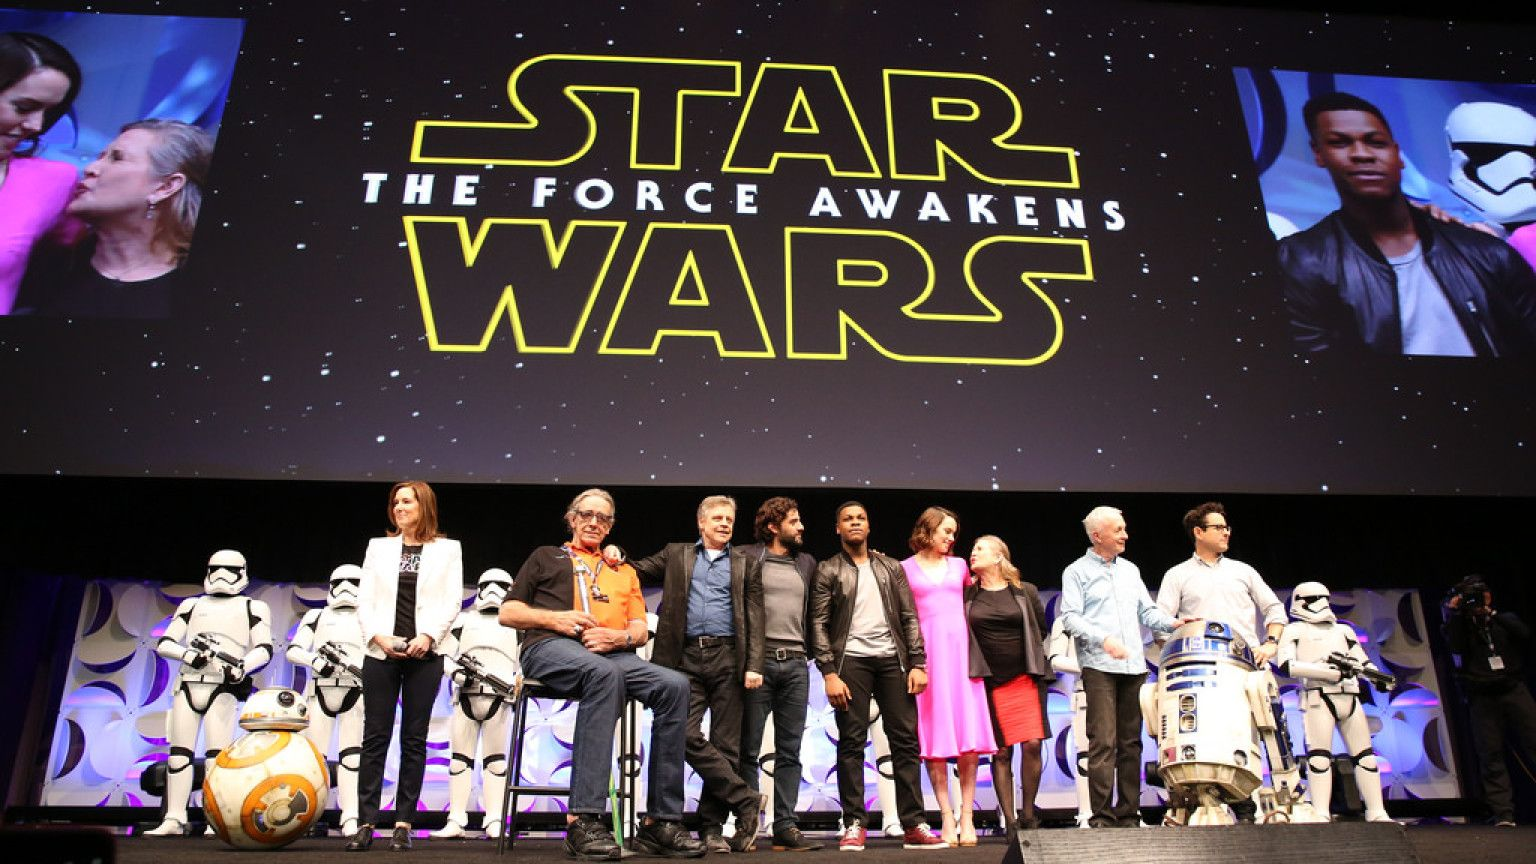 Watch The Star Wars The Force Awakens Red Carpet Live At Starwars Com Starwars Com Star Wars Website Classic Star Wars Star Wars